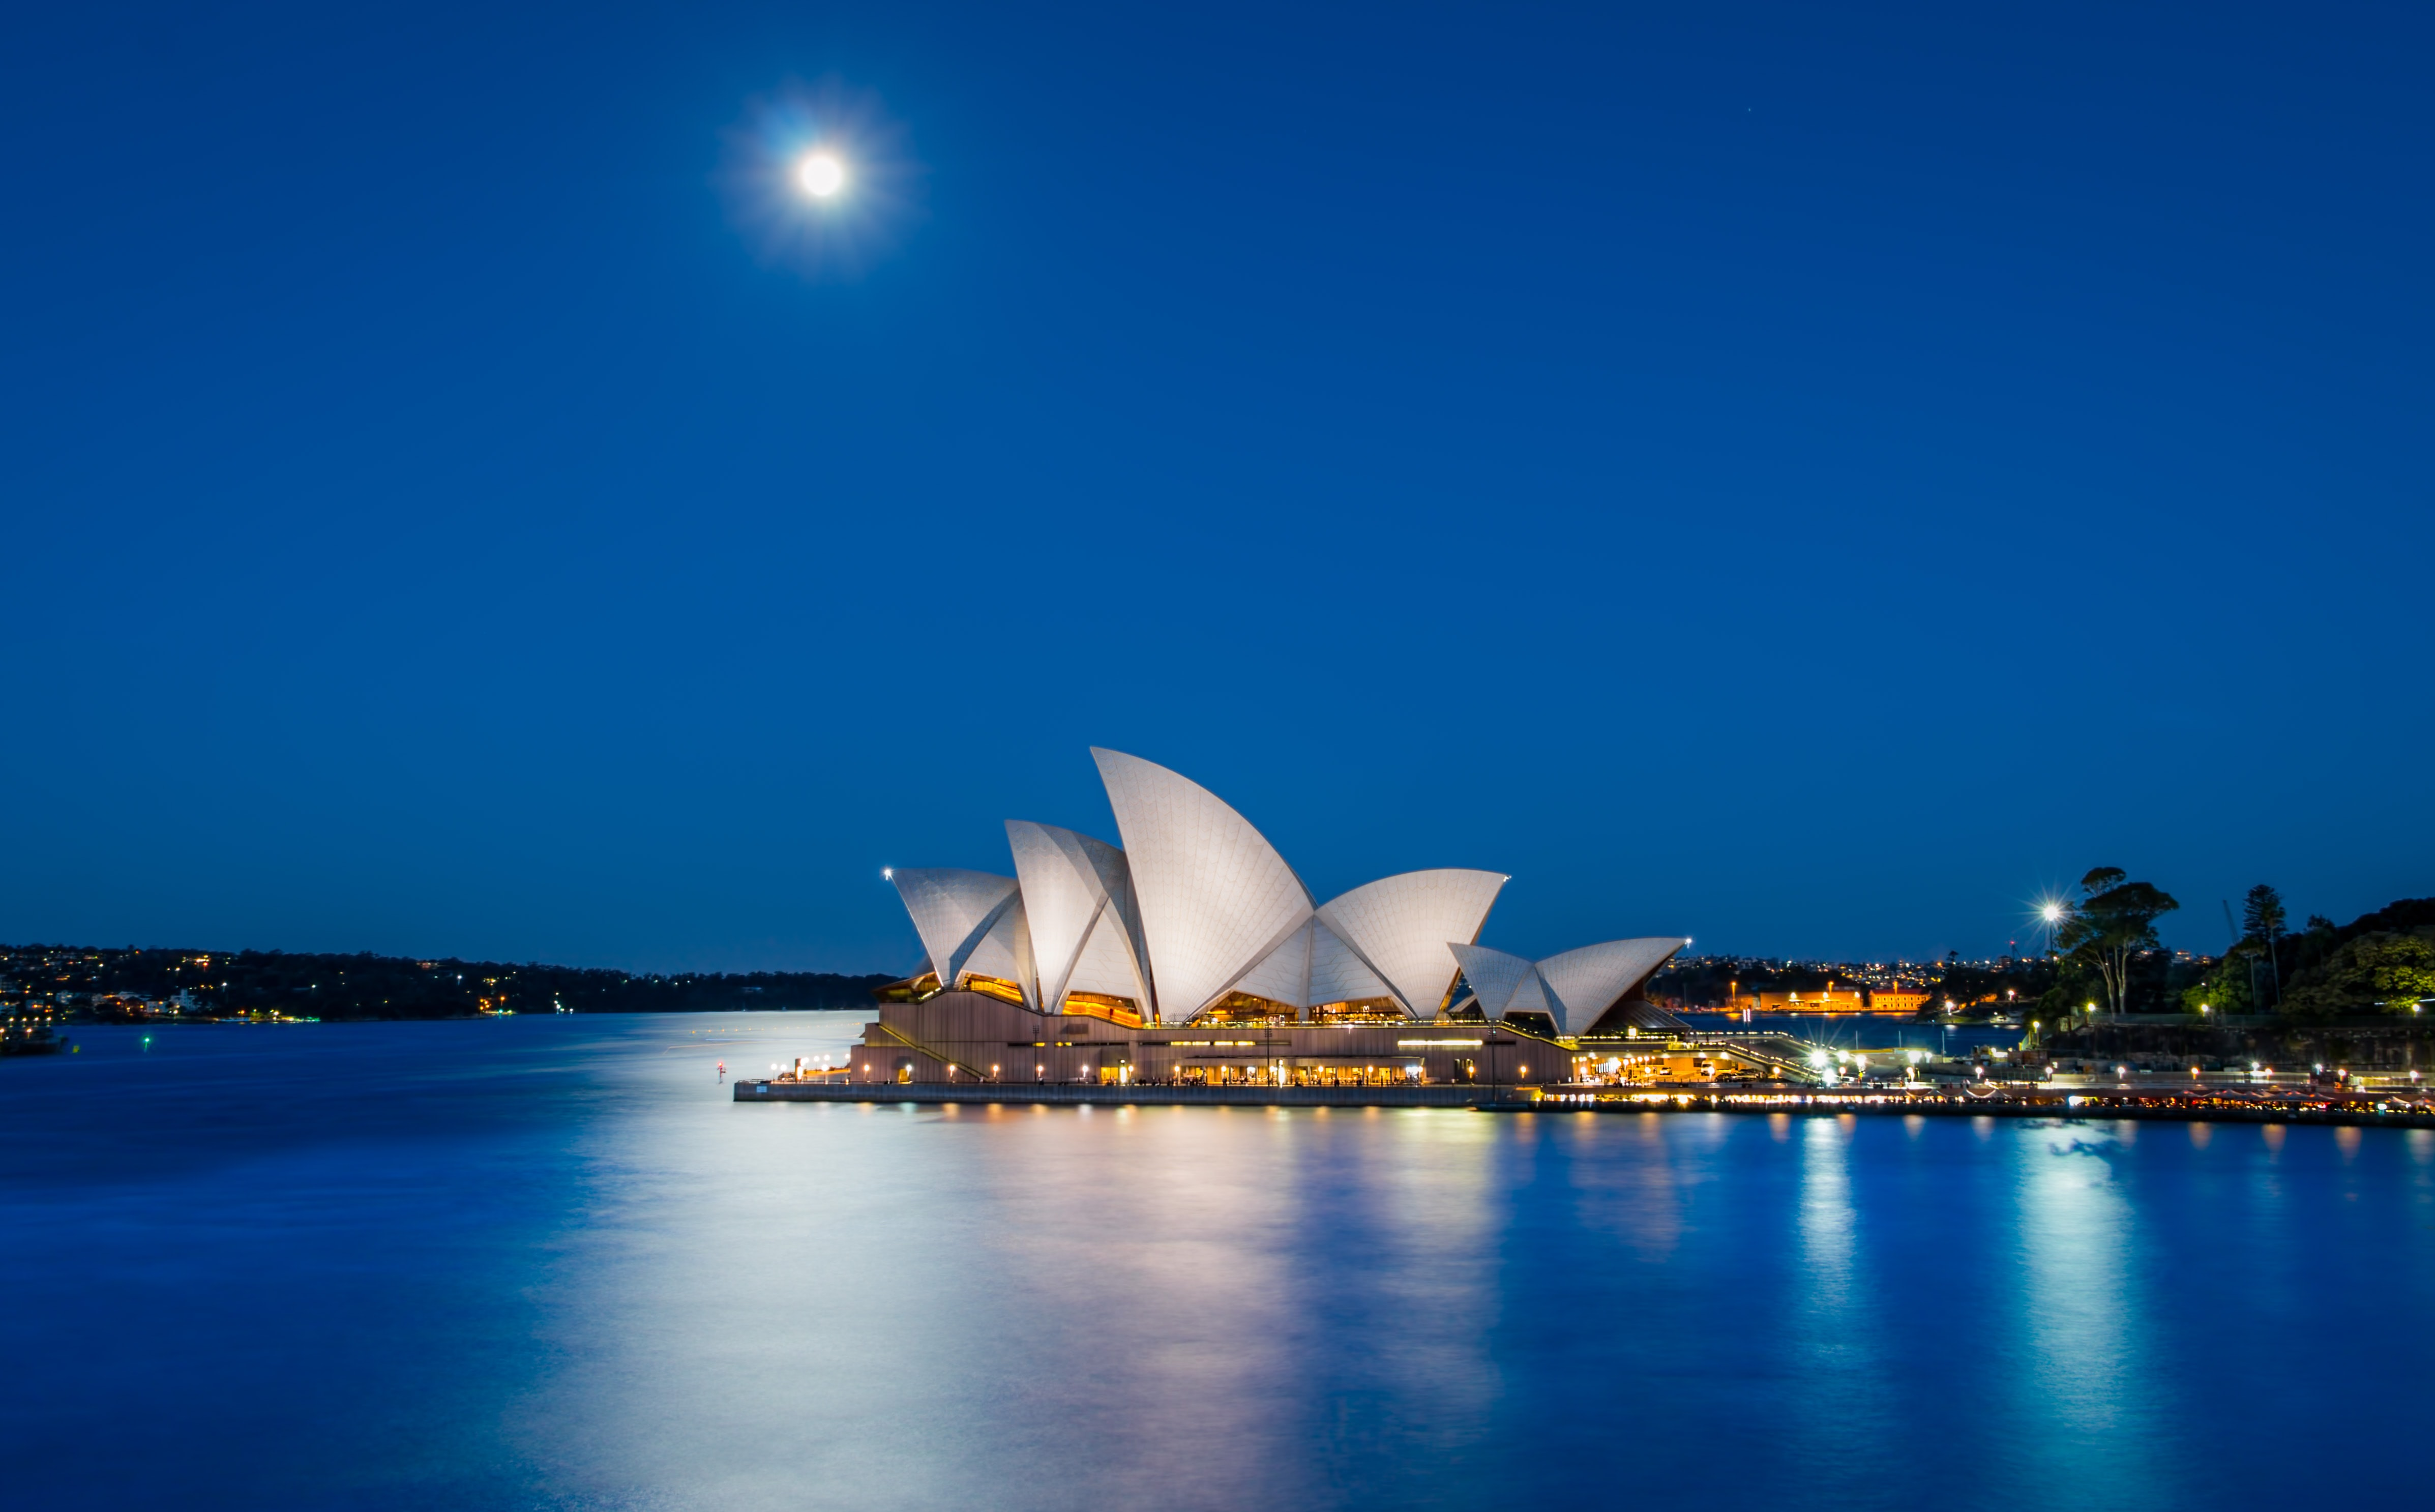 Sydney Opera House, Australia during nighttime